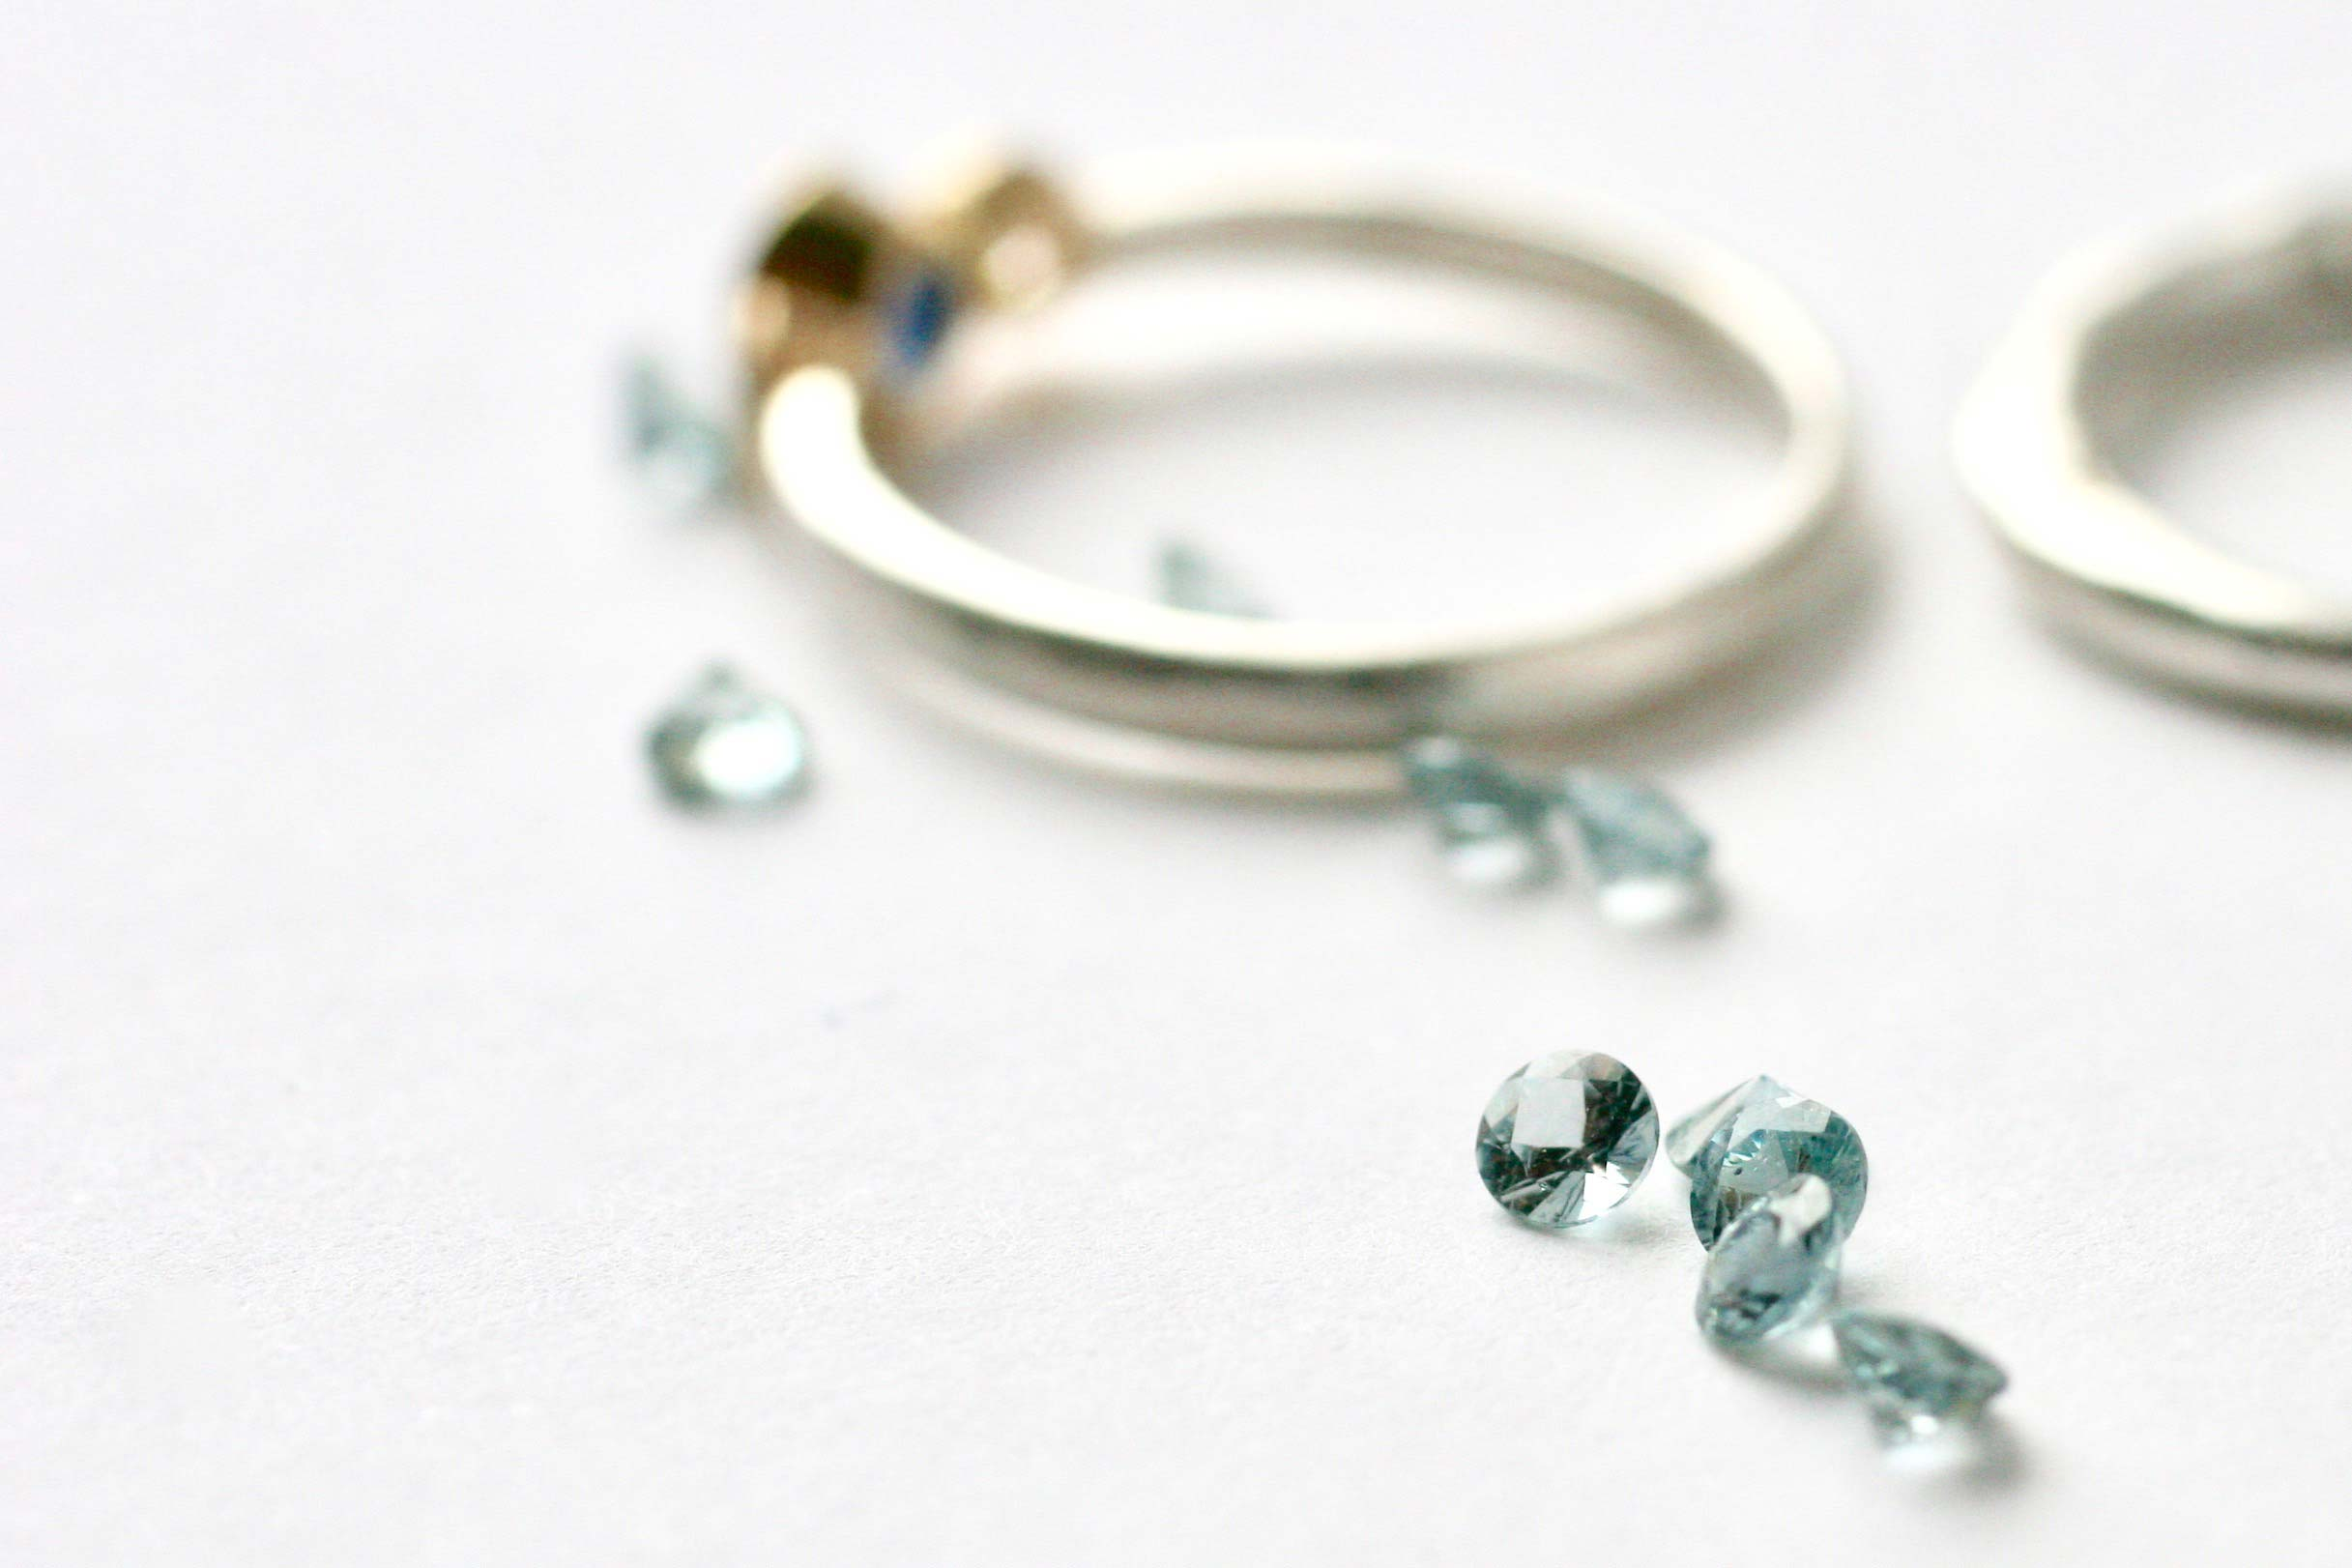 Ethical Gemstones - GEMSI buy gemstones from a very small handful of truly ethical suppliers, those that have the knowledge of the gem's supply, leading right back to the environmentally responsible and safety-conscious mine from which the gems were extracted.Most gems I use come from the USA, Australia and Canada plus from ethical, environmentally responsible mines in Africa.DIAMONDSI use recycled diamonds, in my opinion the most environmentally responsible, conflict-free option possible, as well as Canadian and Australian origin diamonds.SEA GLASSI also use genuine sea glass, which I collect on the beaches of the beautiful Devon and Cornwall coastlines, and sometimes I buy from trusted collectors here in the UK and around the world.